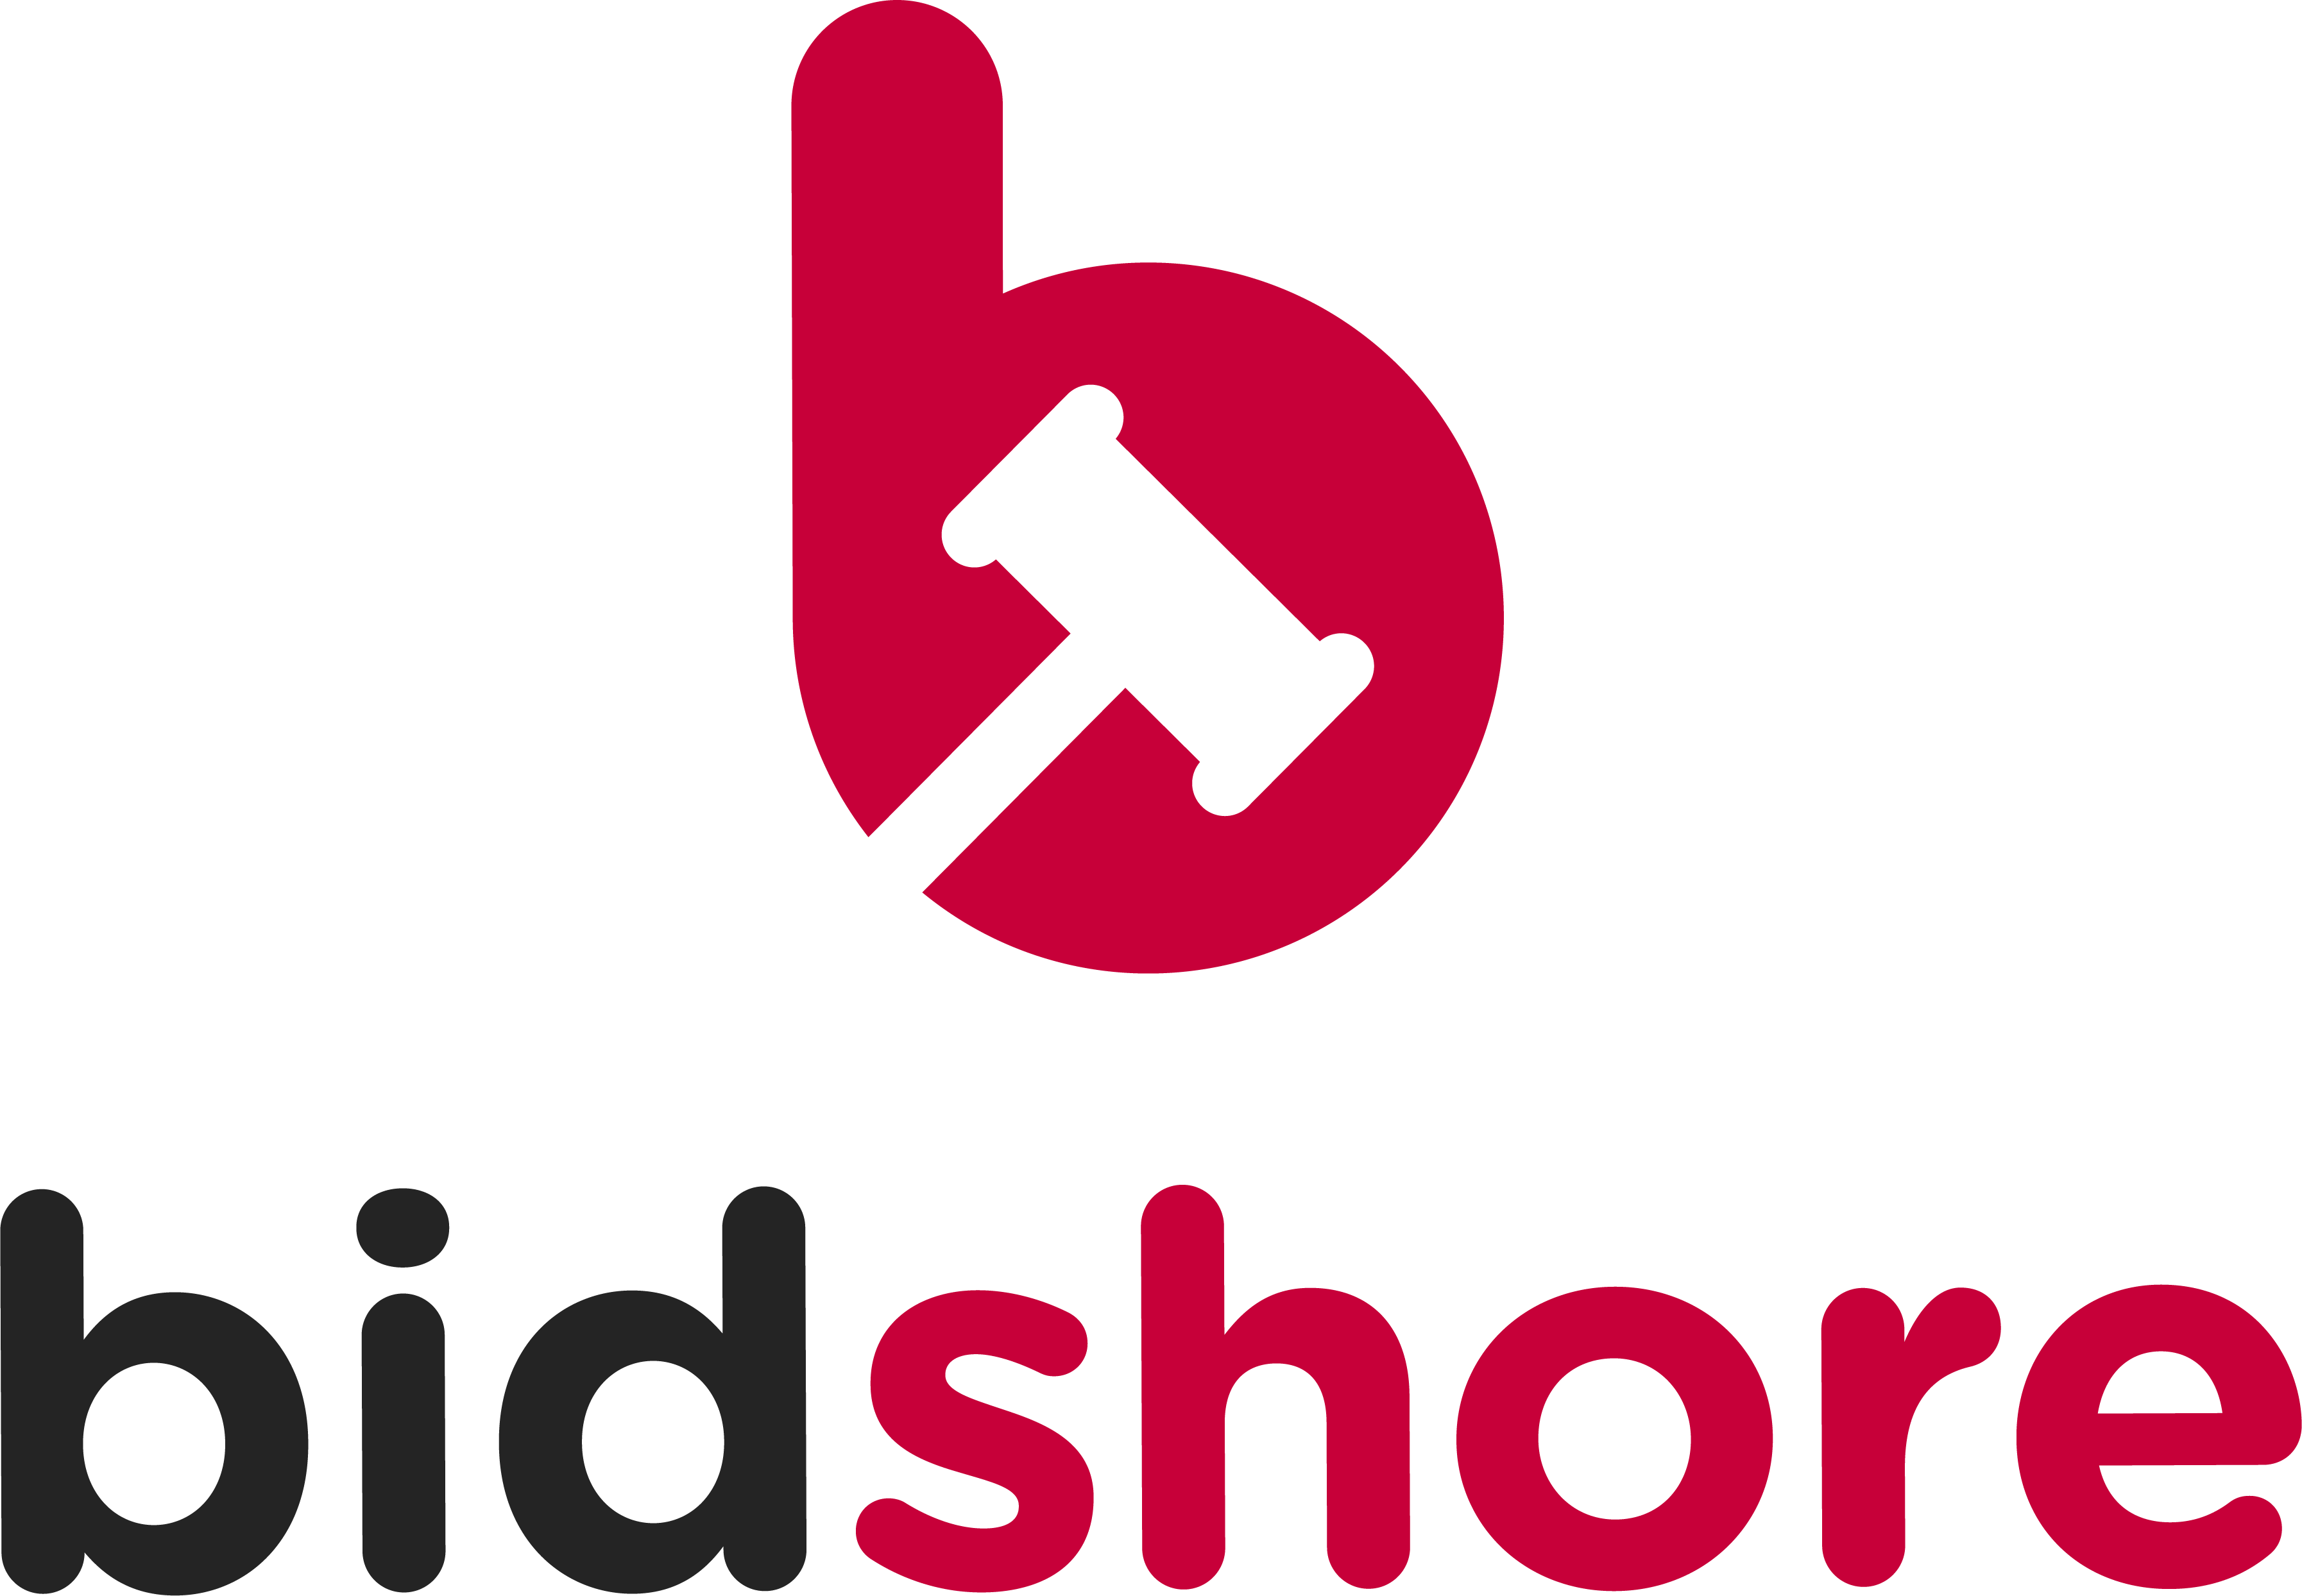 BidShore Help Center Help Center home page